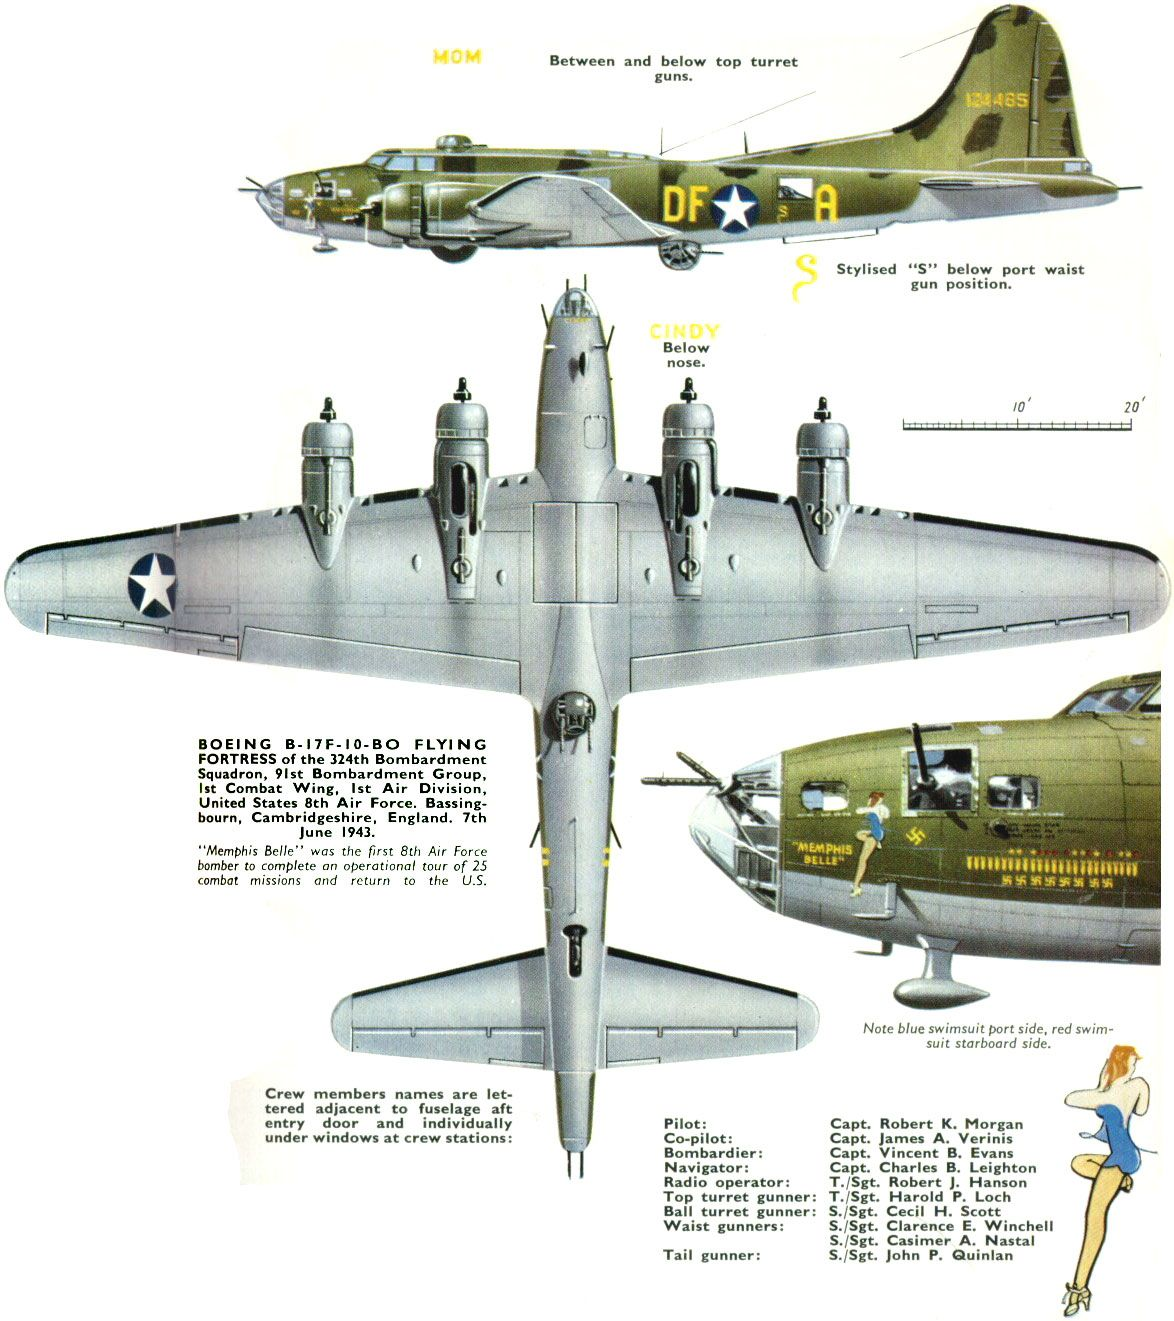 Boeing B17  bomber, the type lown by Nancy's dad in WW II He was shot down  in a bombing raid on Berlin, survived being a POW and went on to become a Strategic Air Command B-52 Command Pilot before retiring.